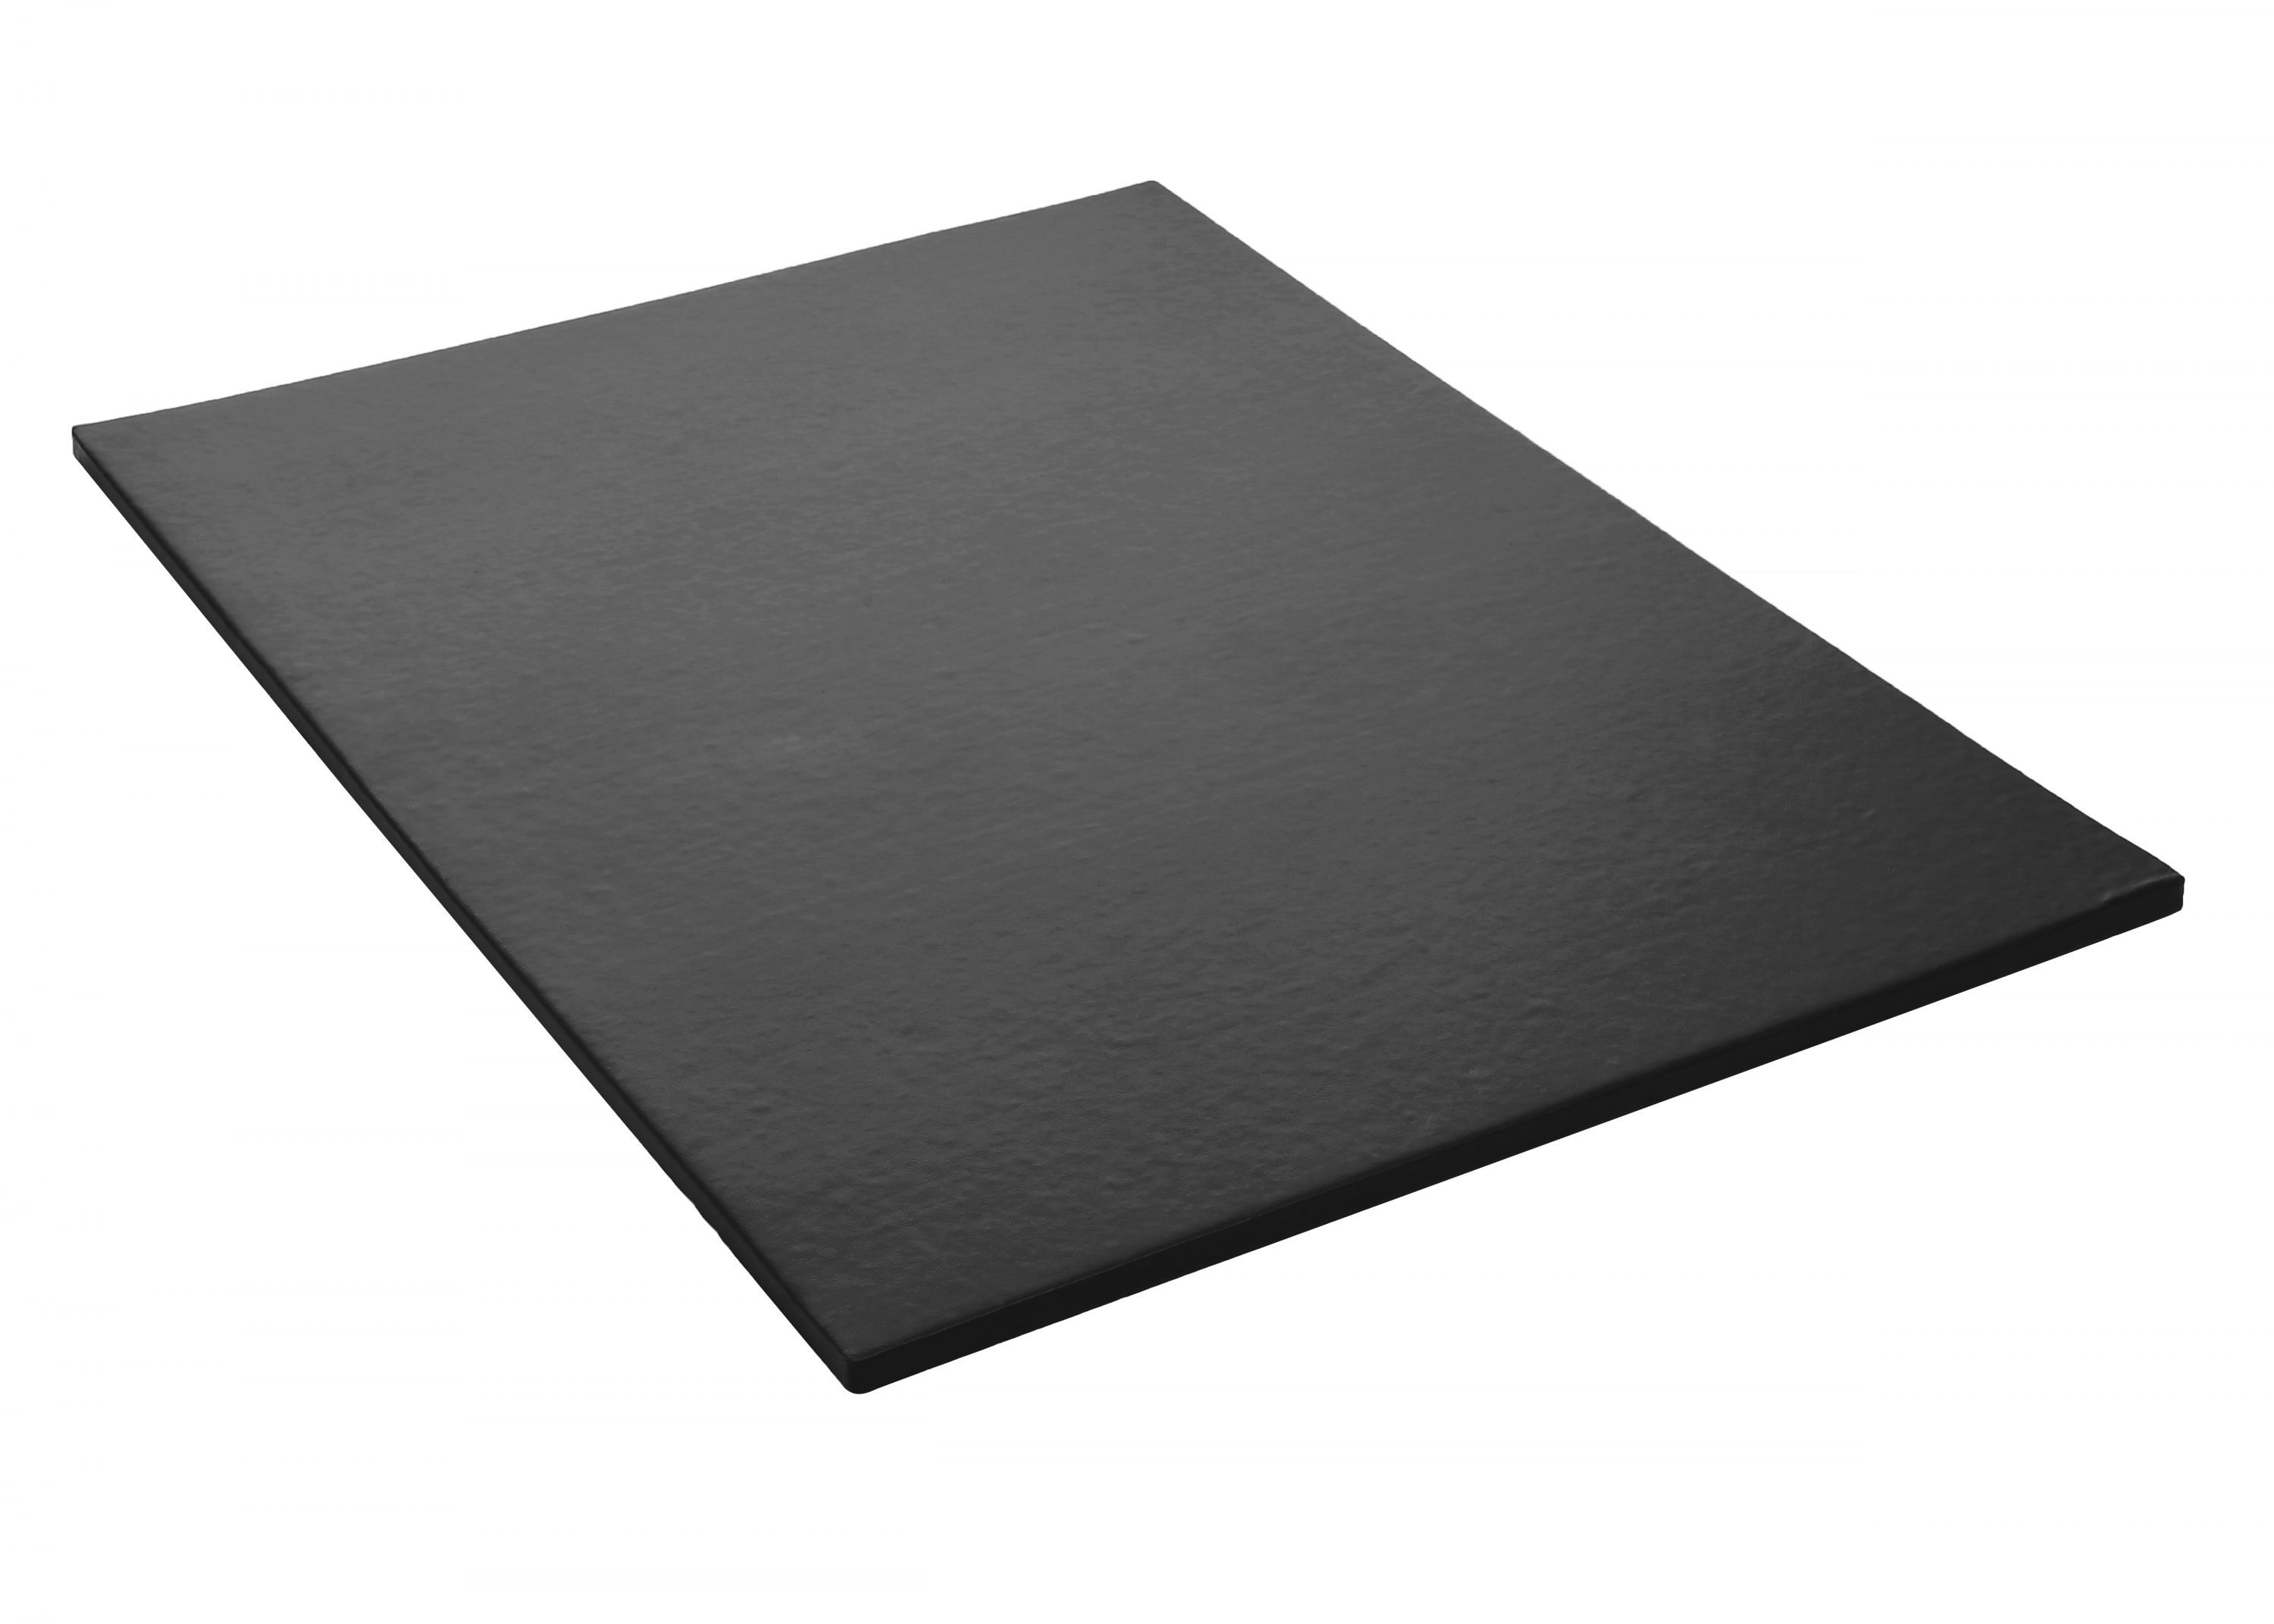 Promat Super Lightweight Gym Mat - Black